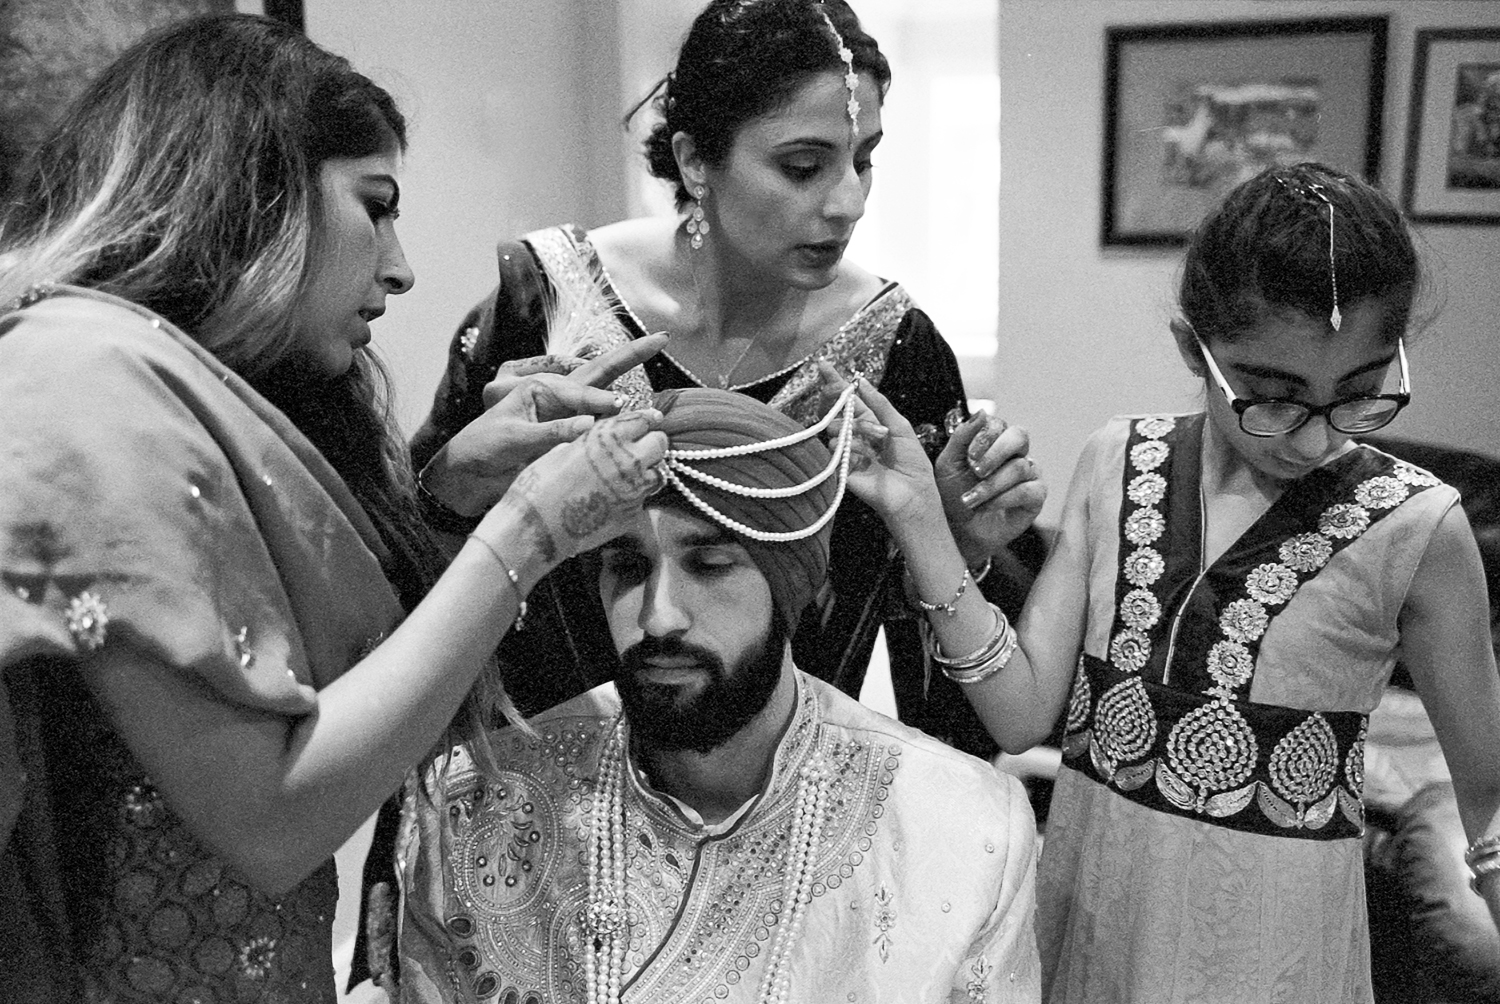 Best-Analog-Film-Wedding-Photographers-in-Toronto-3B-Photography-Brian-B-Bettencourt-Leica-M4P-Kodak-Film-Portra-400-Groom-Getting-ready-putting-on-traditional-turban-with-help-from-family.jpg